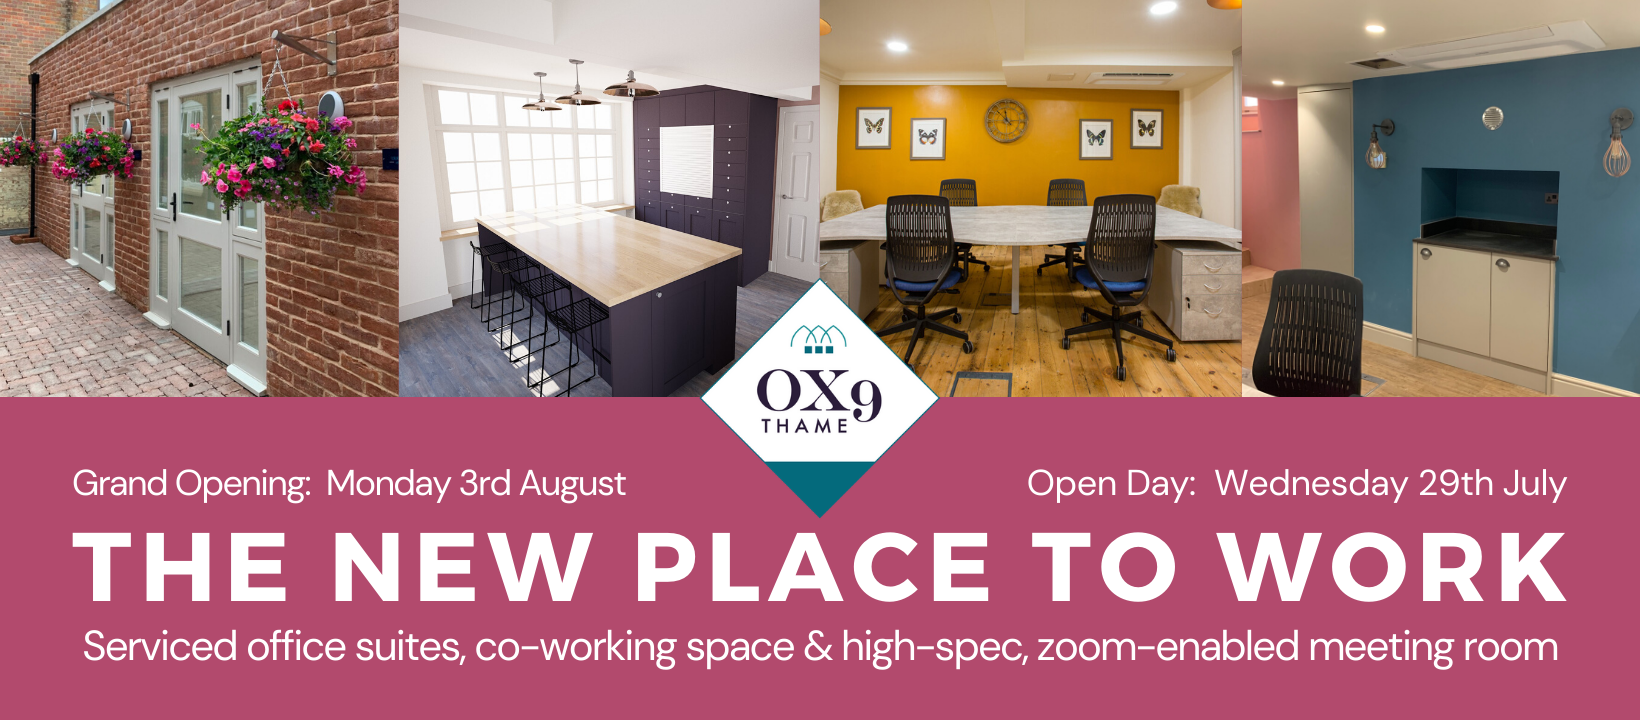 OX9 Thame | Serviced Offices | Shop OX9 Directory | Thame Rewards Club